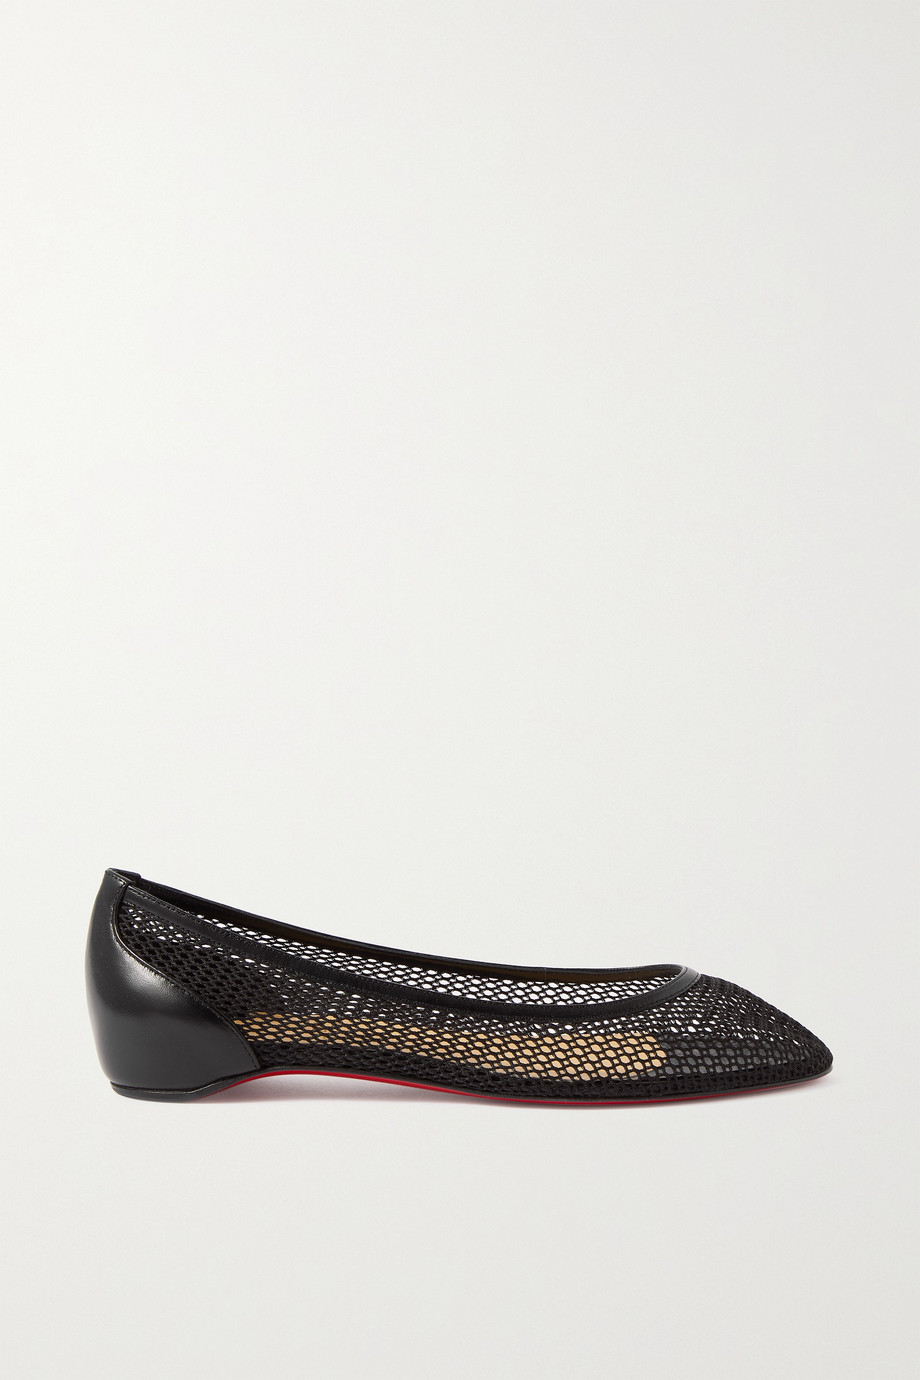 CHRISTIAN LOUBOUTIN Filomena mesh and leather point-toe flats